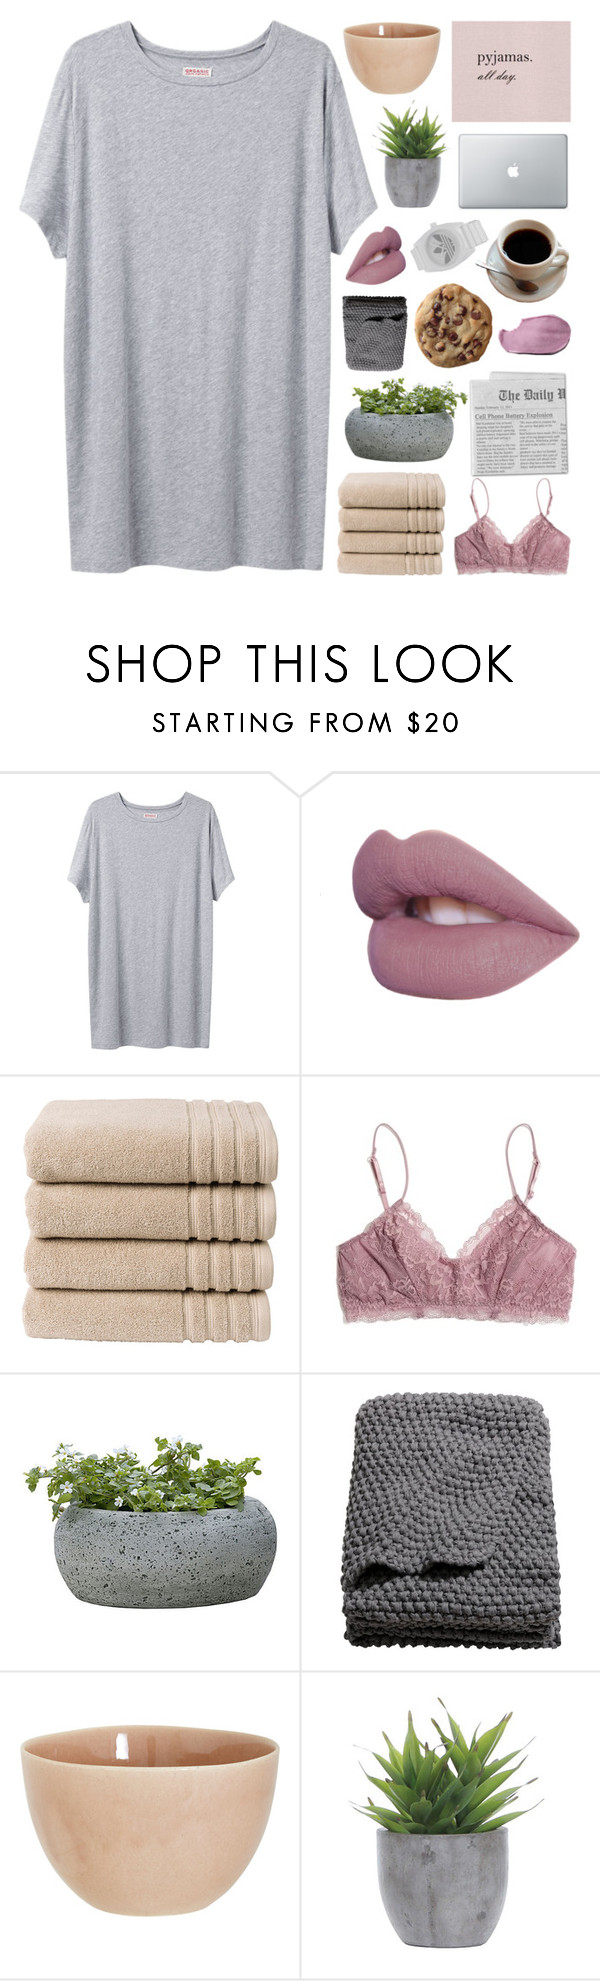 """""""ALANA"""" by d0ntblink ❤ liked on Polyvore featuring Organic by John Patrick, Christy, Madewell, Campania International, H&M, atelier tete, Lux-Art Silks, adidas, women's clothing and women"""